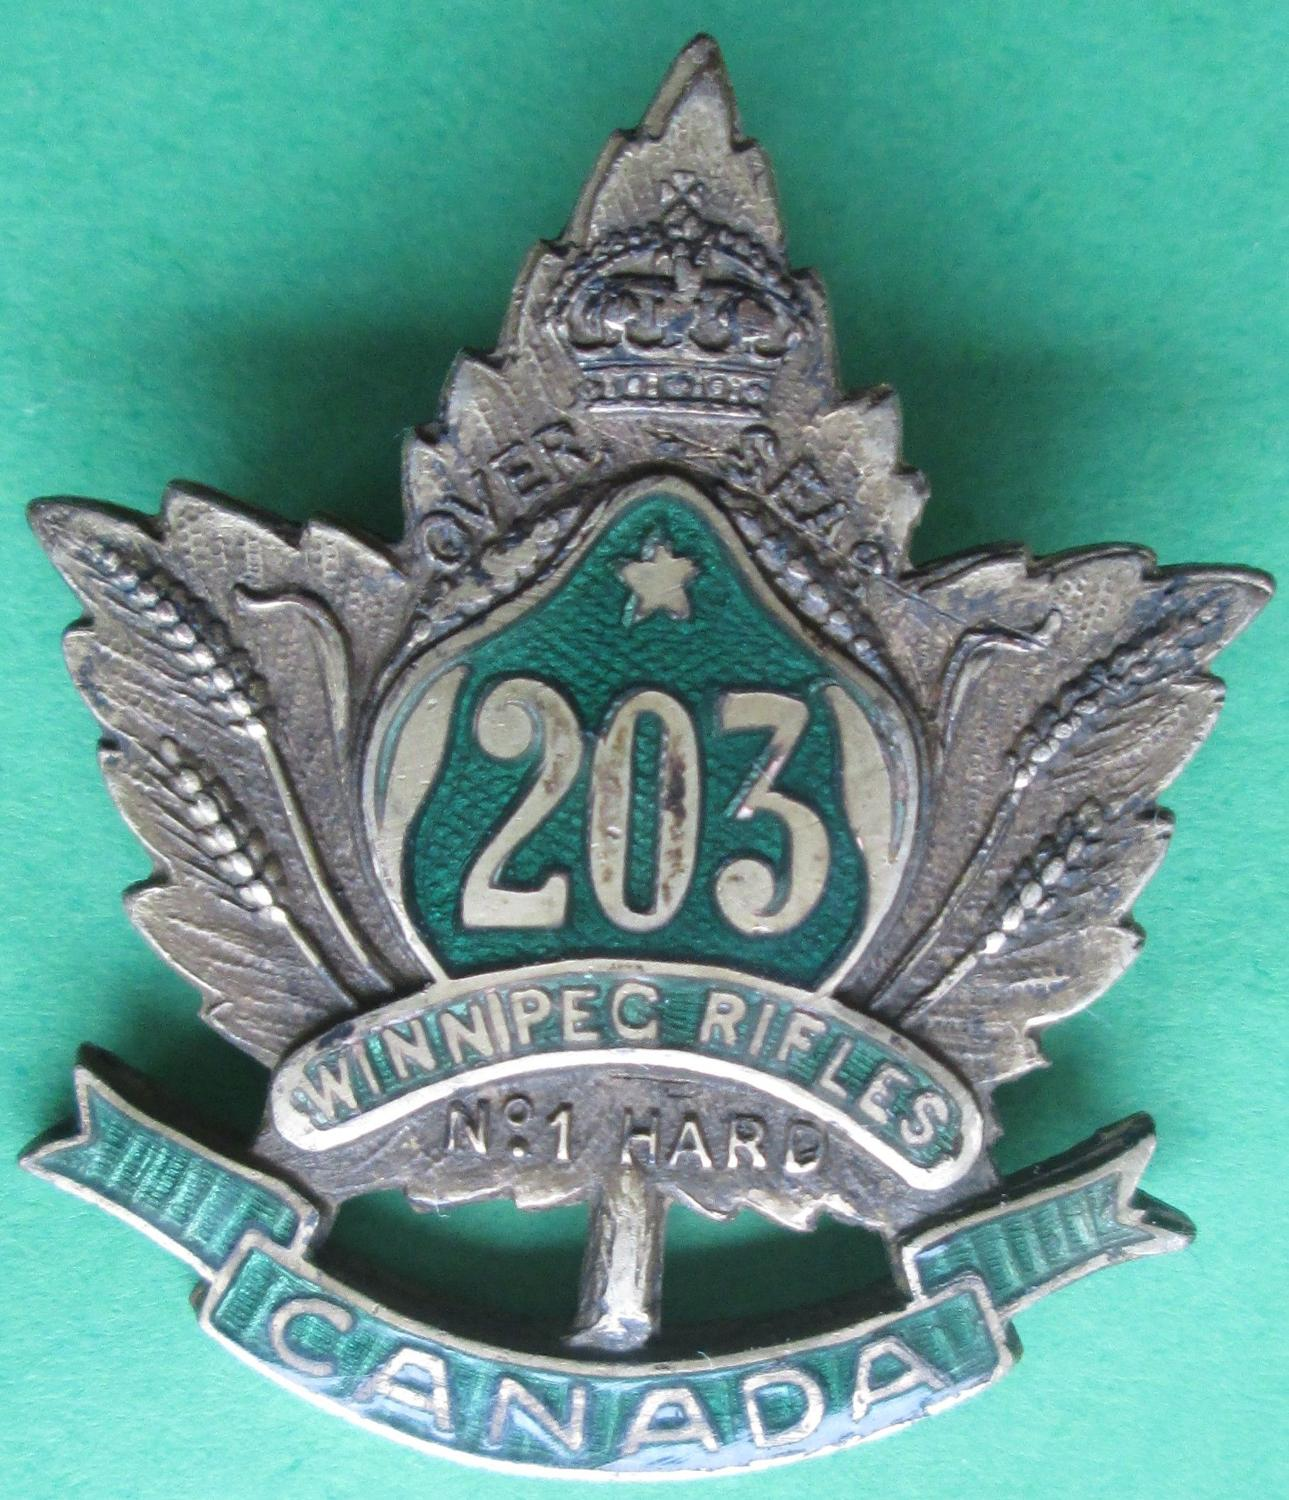 A CANADIAN PIN BADGE FOR THE WINNIPEG RIFLES 203